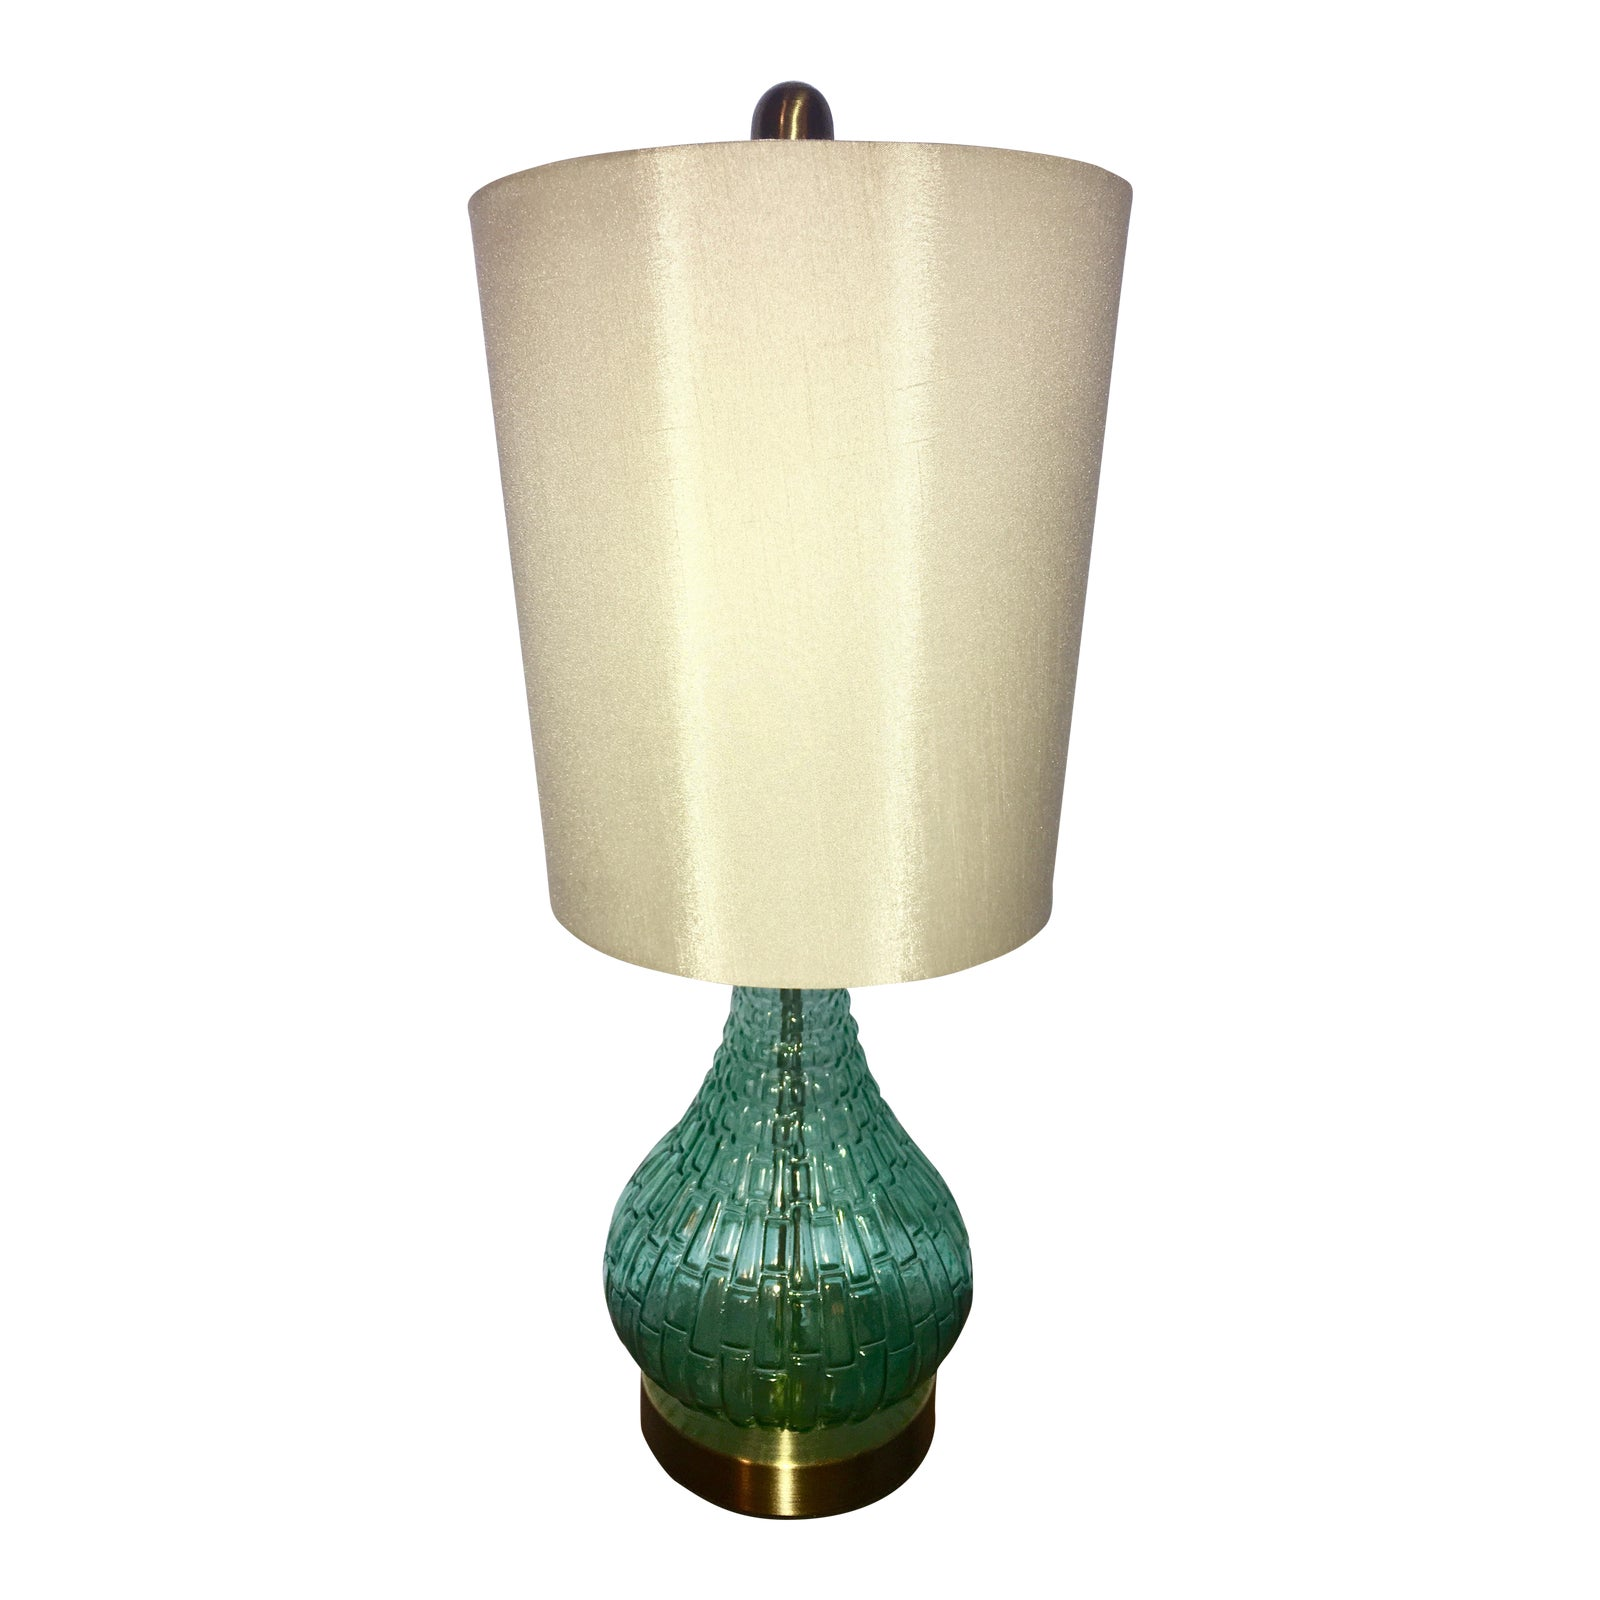 1990S Americana Turquoise Glass Lamp With White Linen Lampshade -